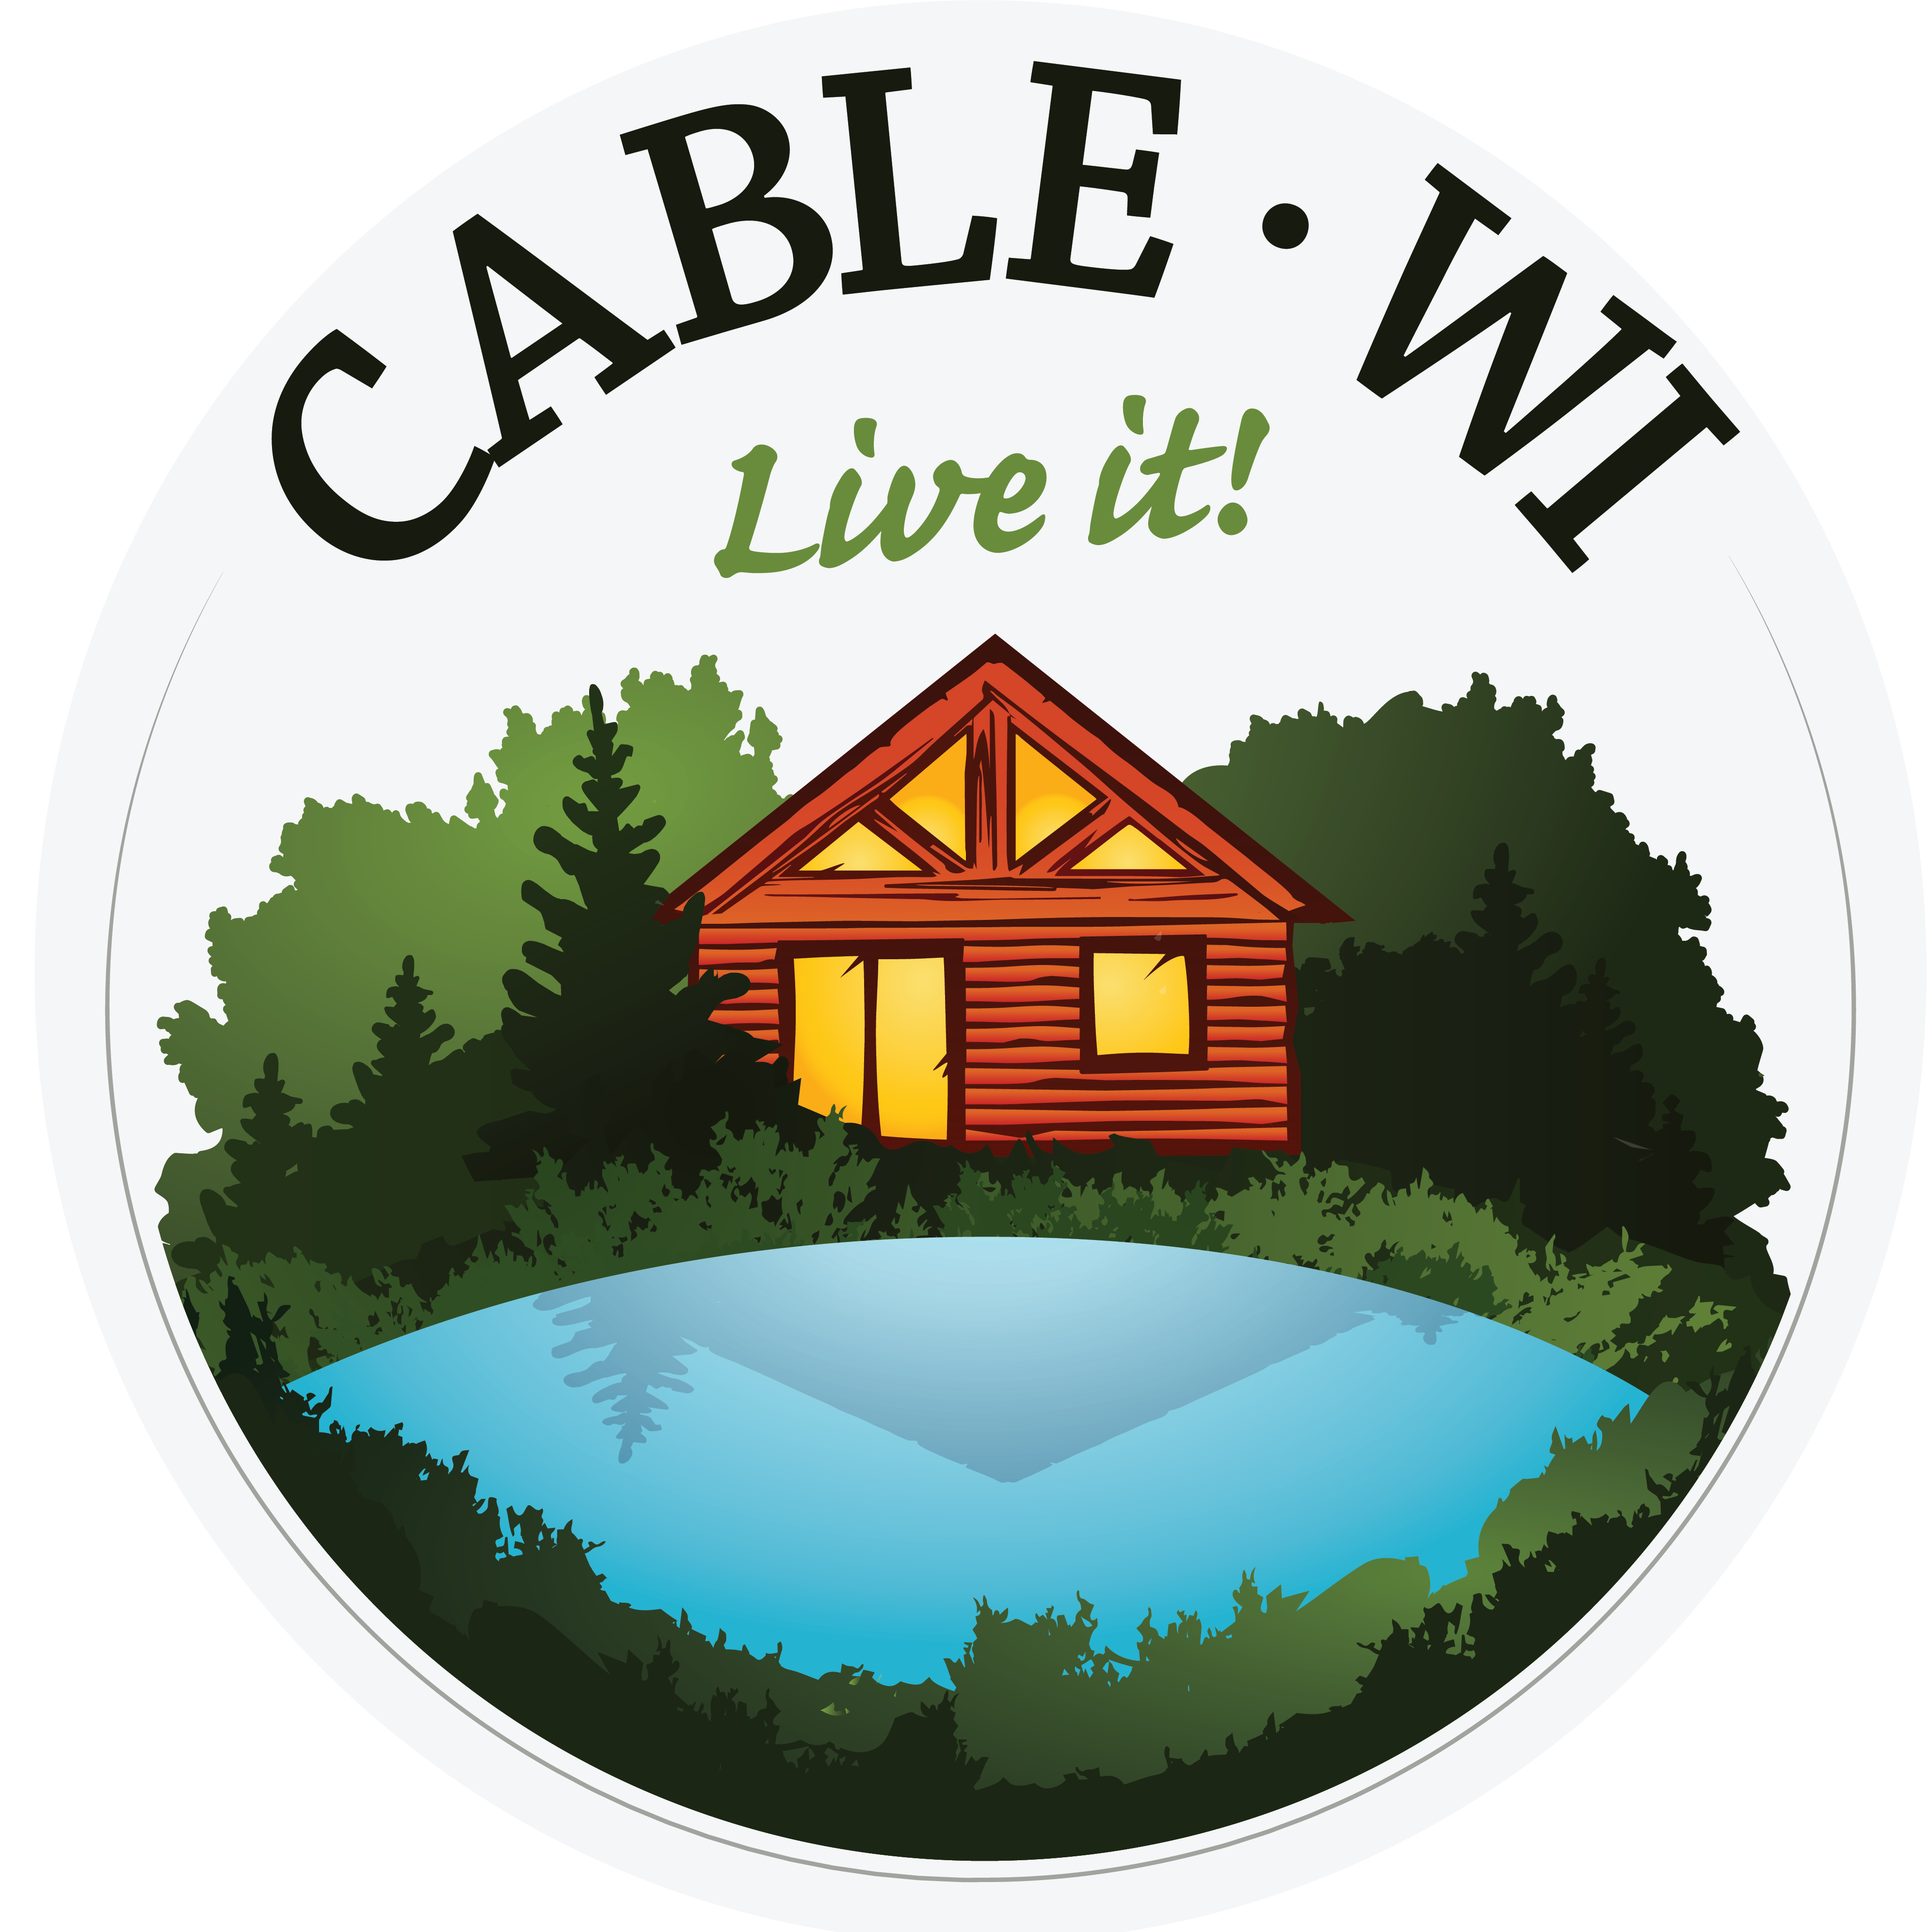 Town of Cable